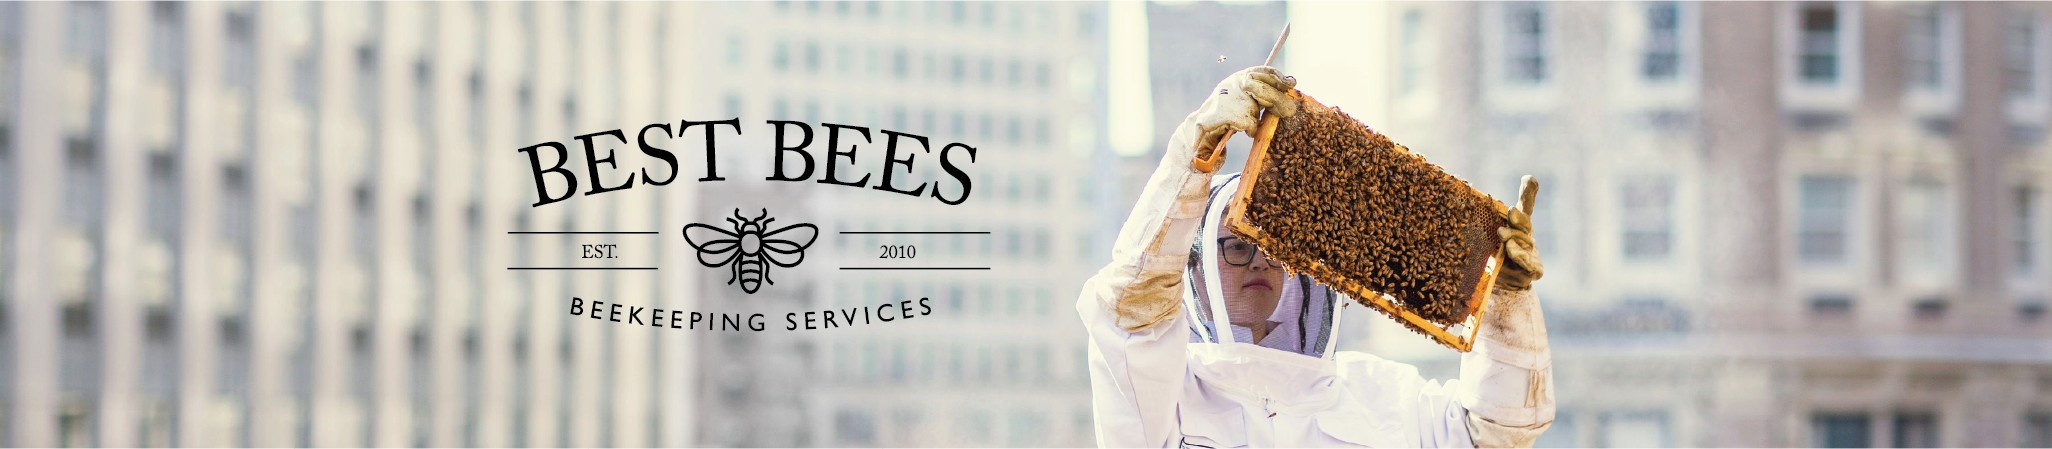 The Best Bees Company | LinkedIn